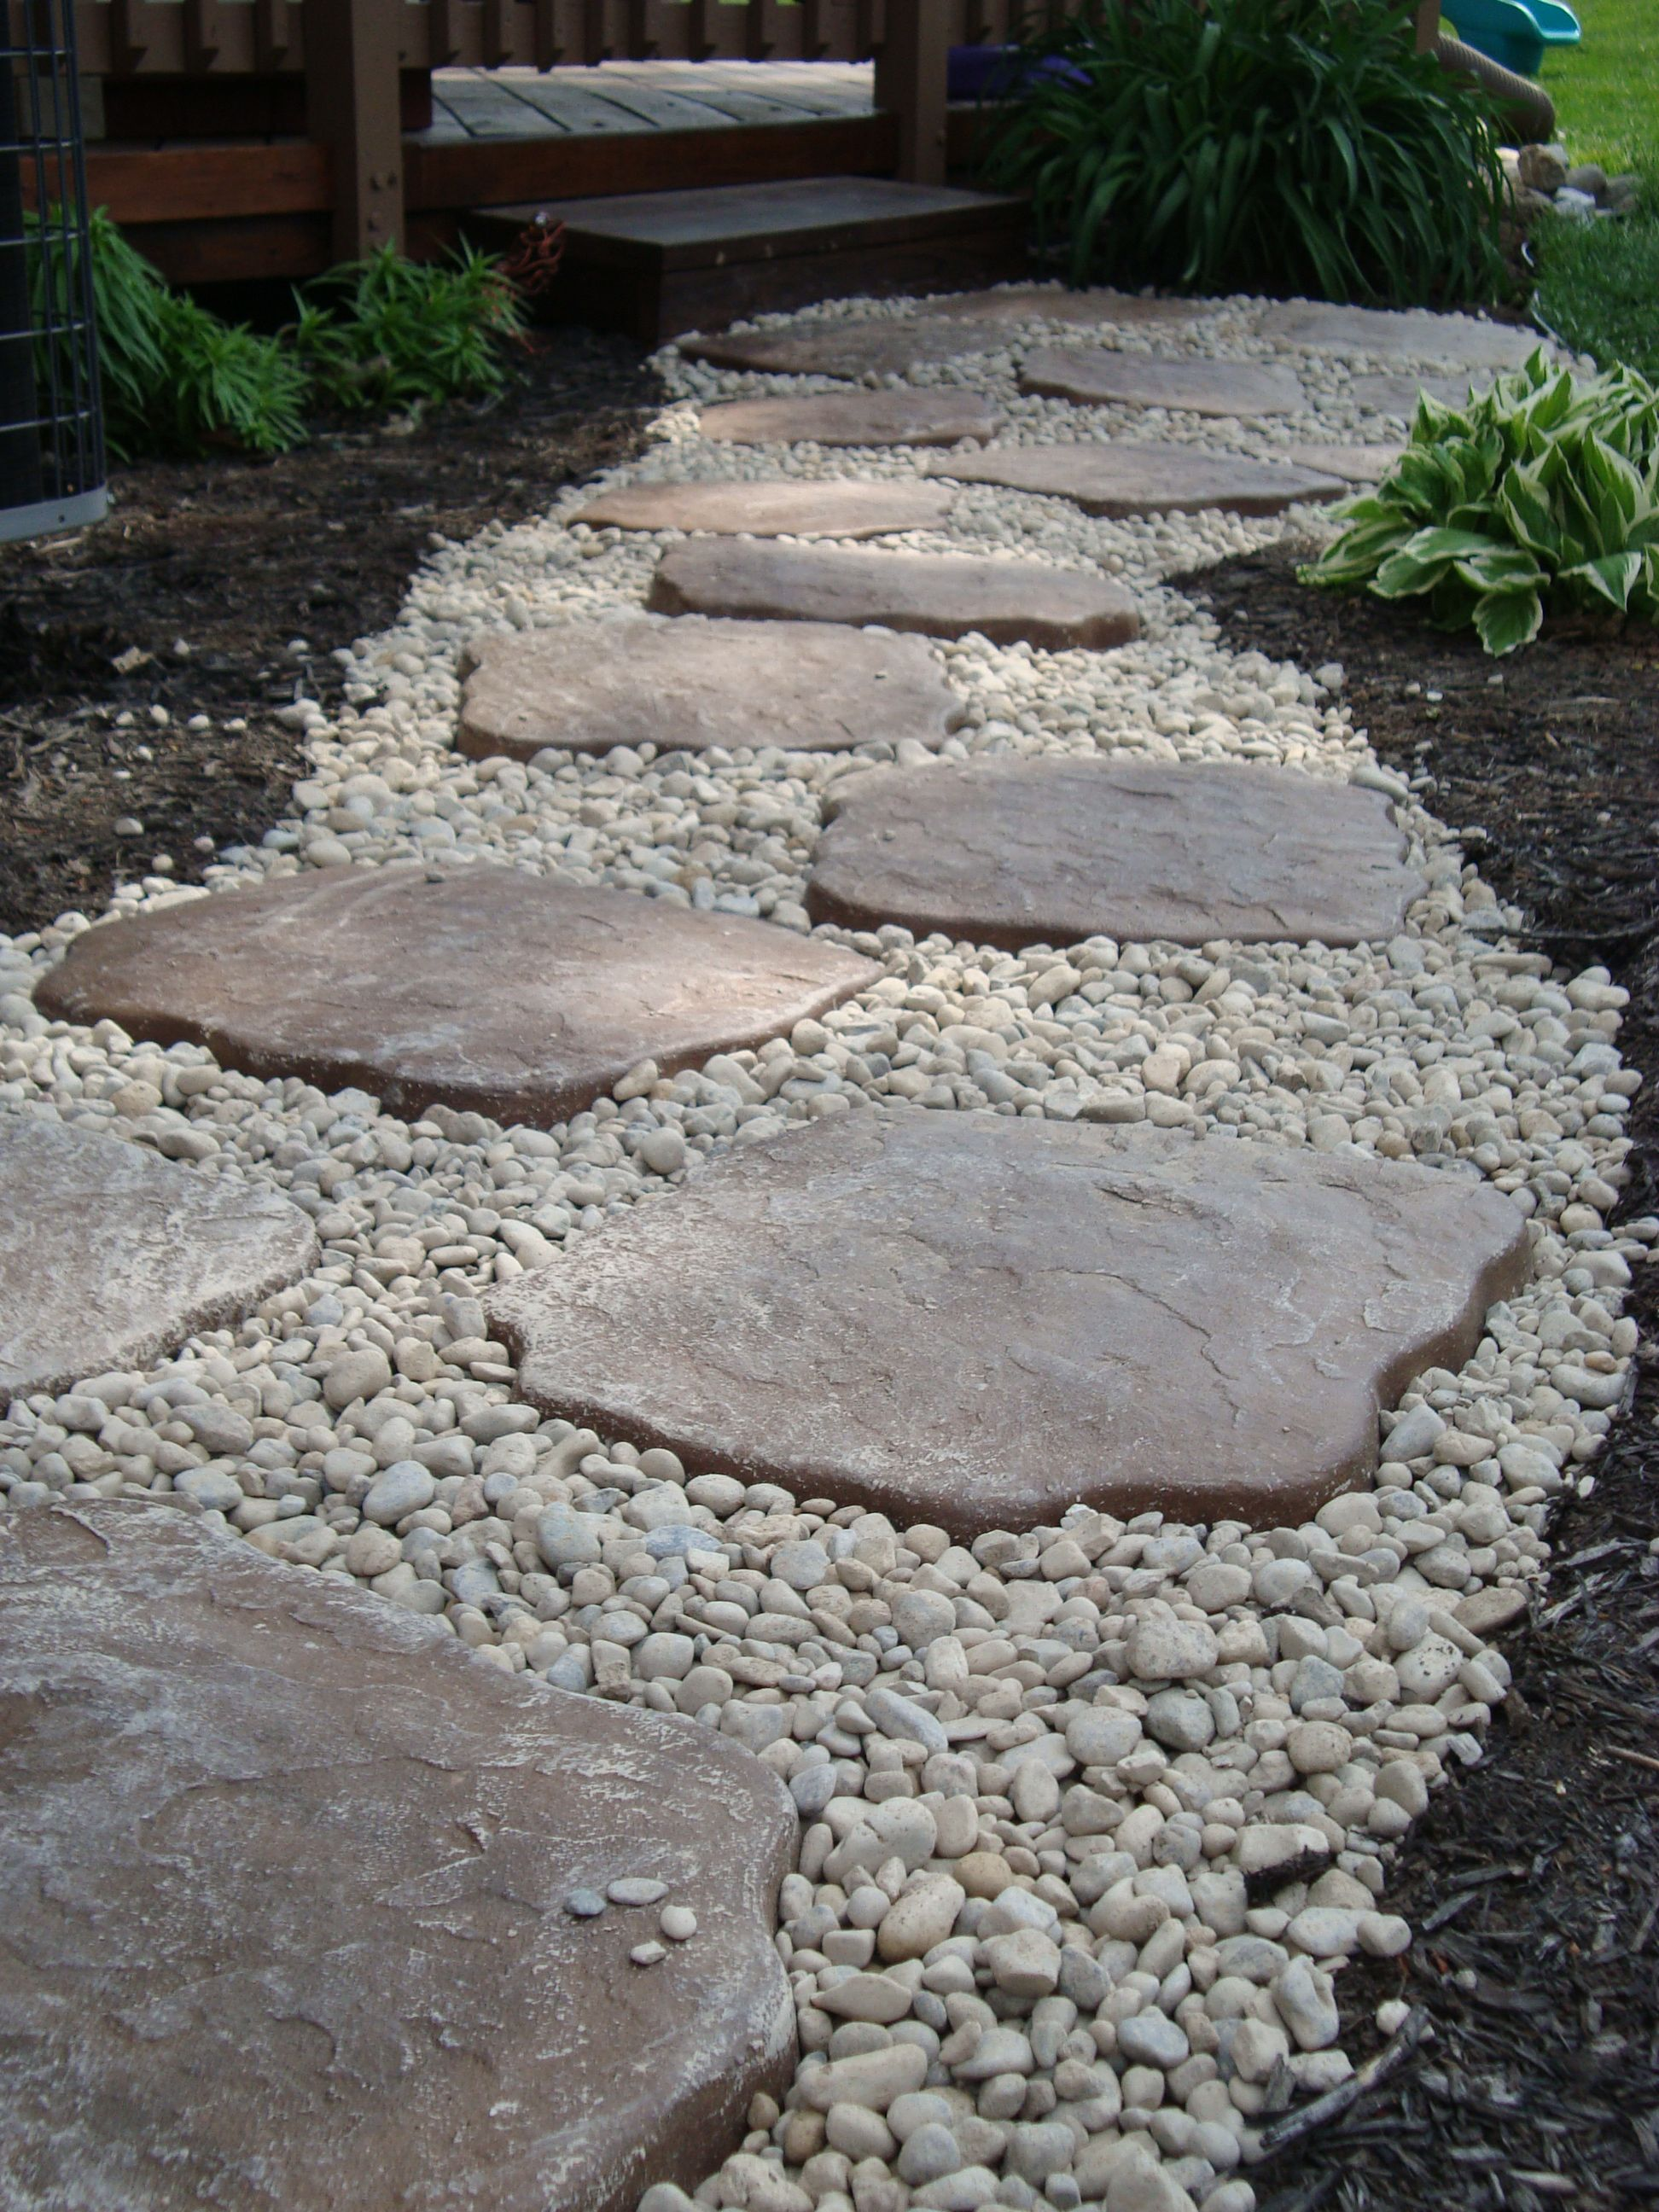 Landscaping i did diy use edging to contain small river for Rock landscaping ideas